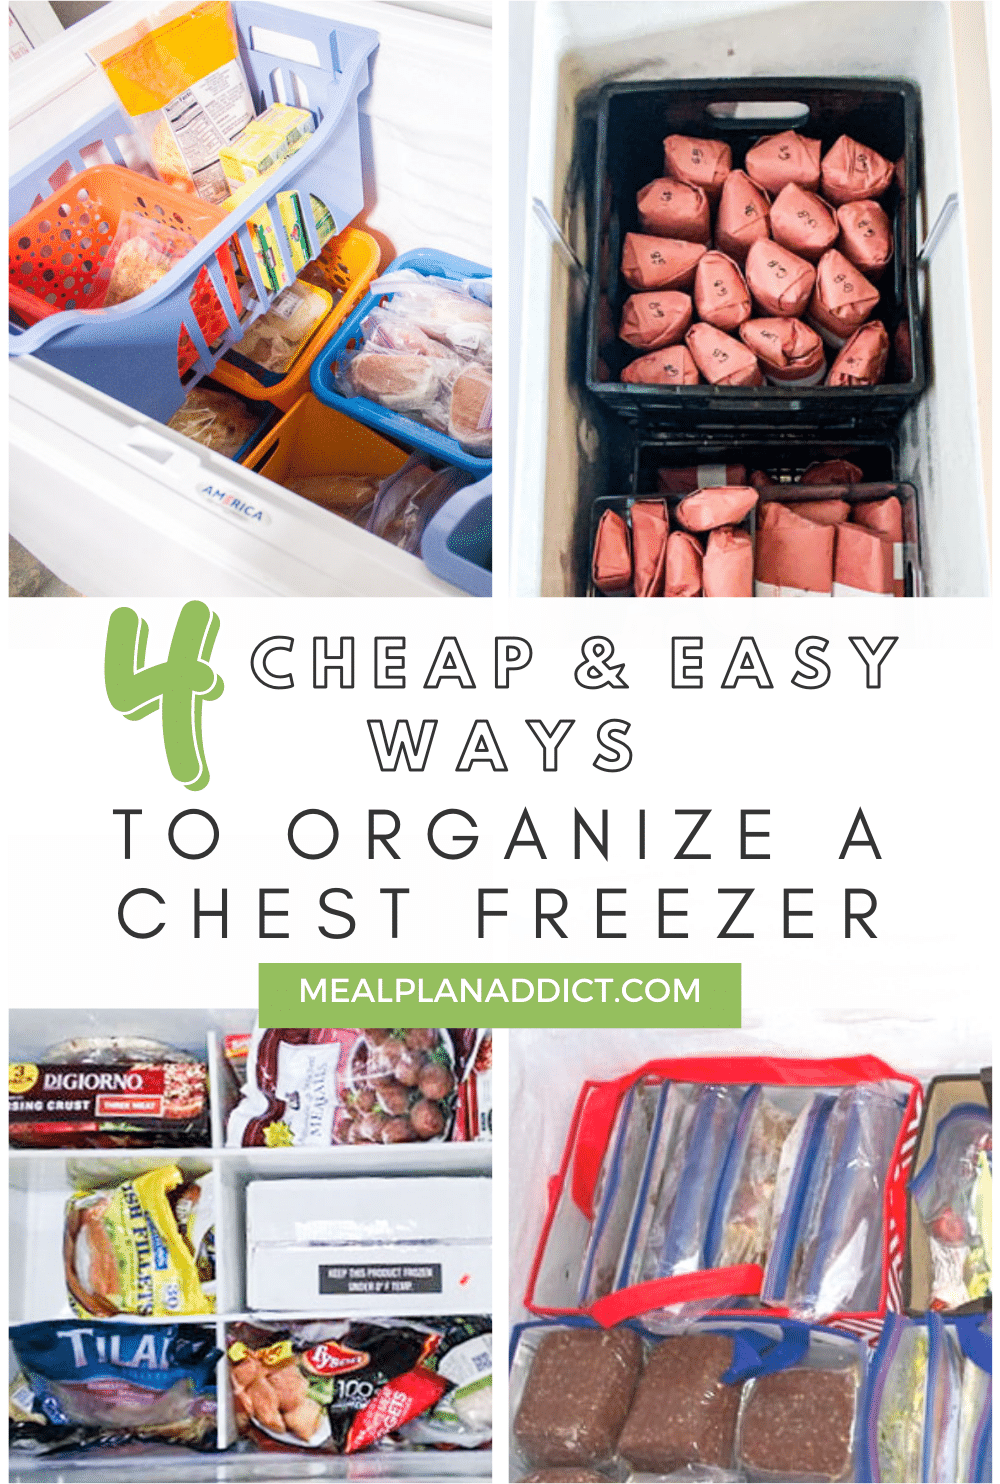 4 cheap and easy ways to organize a chest freezer